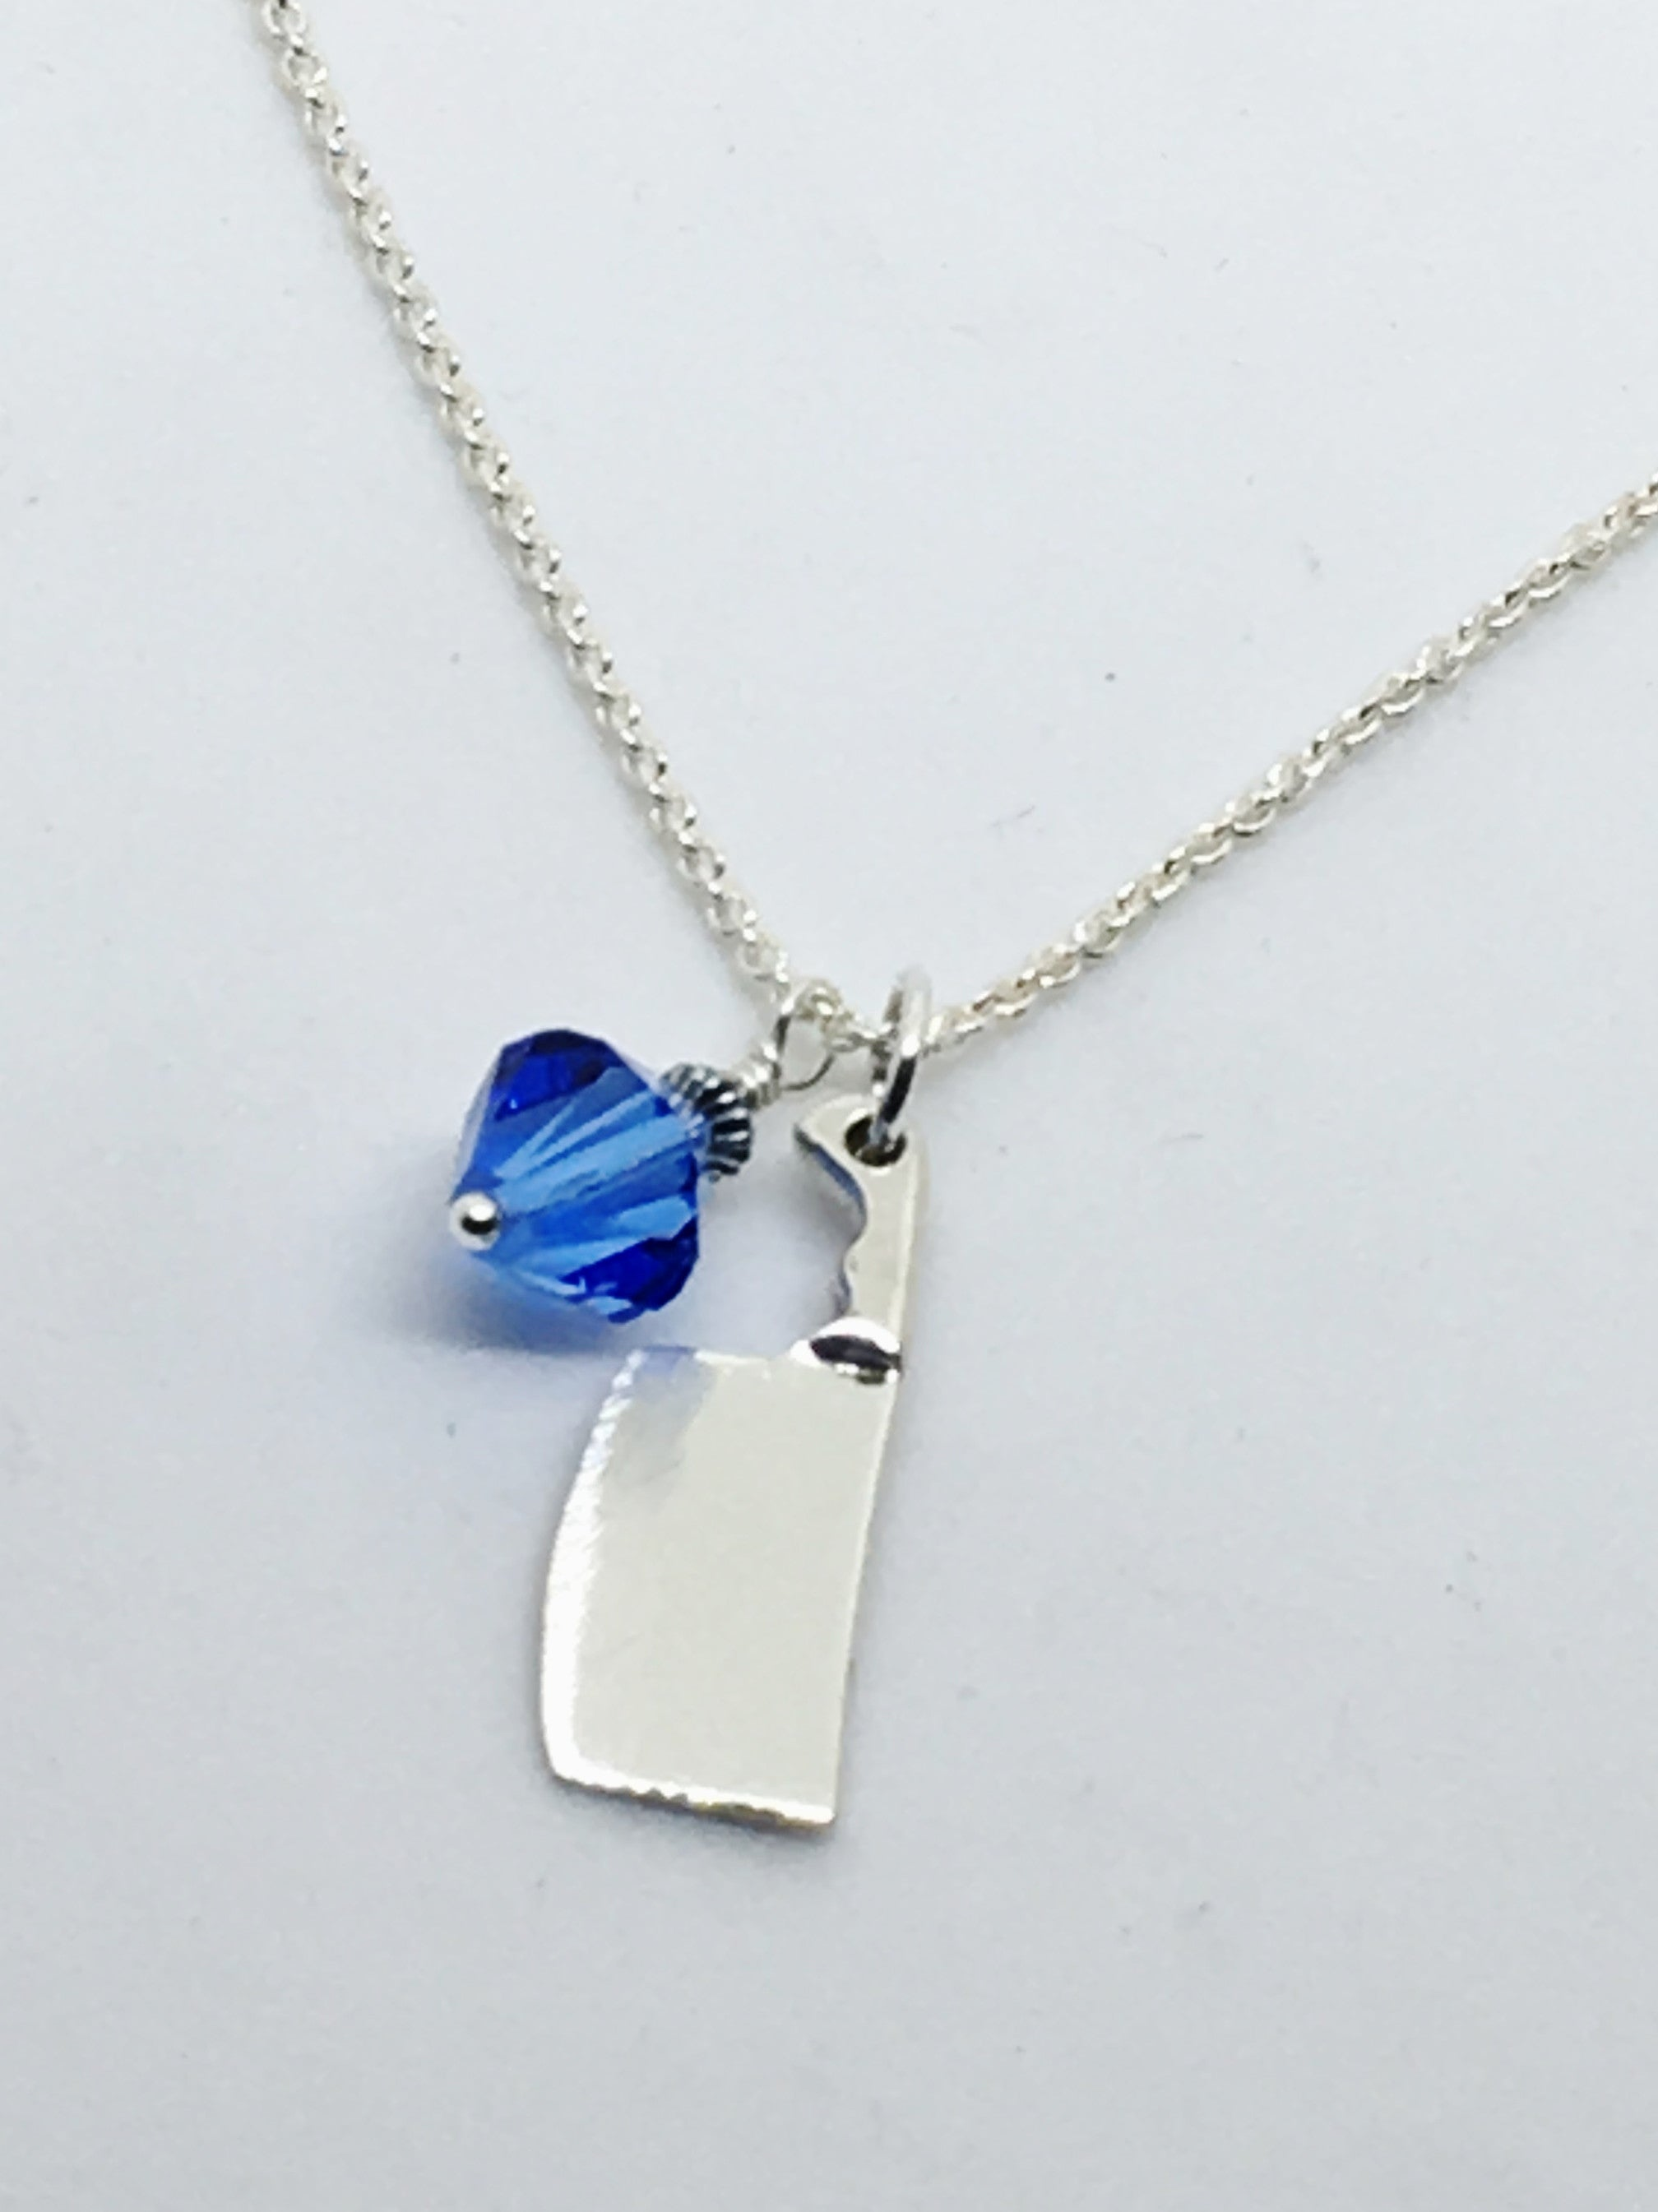 Chef's Cleaver Pendant Necklace with Blue Swarovski Crystal Charm